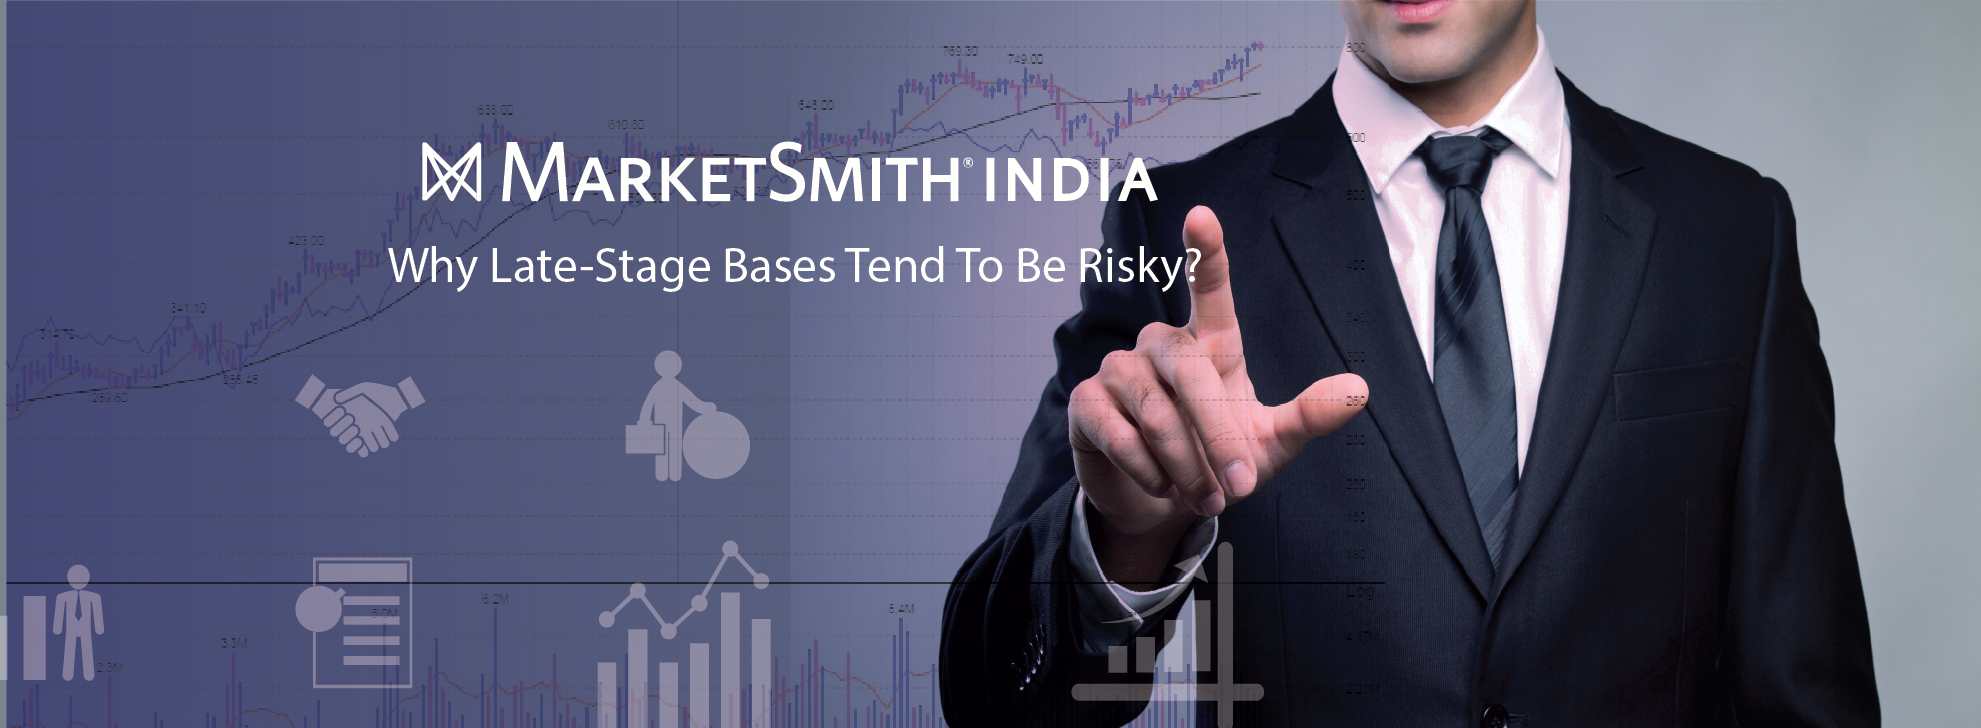 MarketSmith India_Why Late-Stage Bases Tend To Be Risky